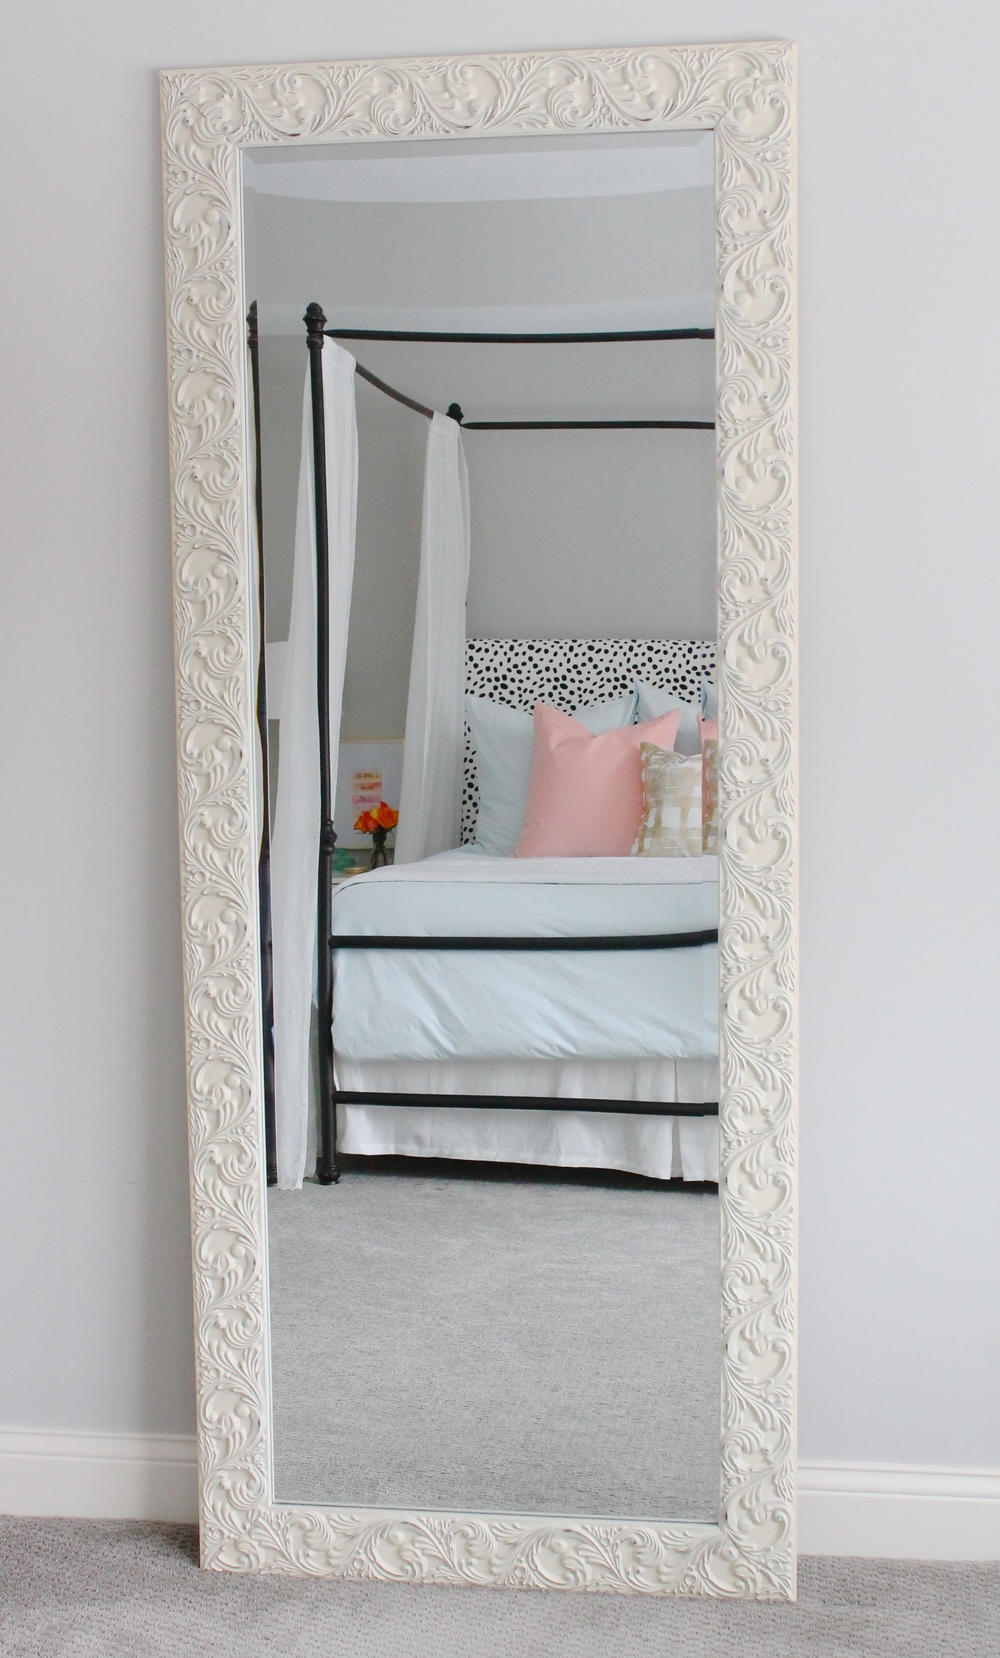 Lovely master bedroom with leaner mirror, pink and blue bedding and a dalmatian headboard.